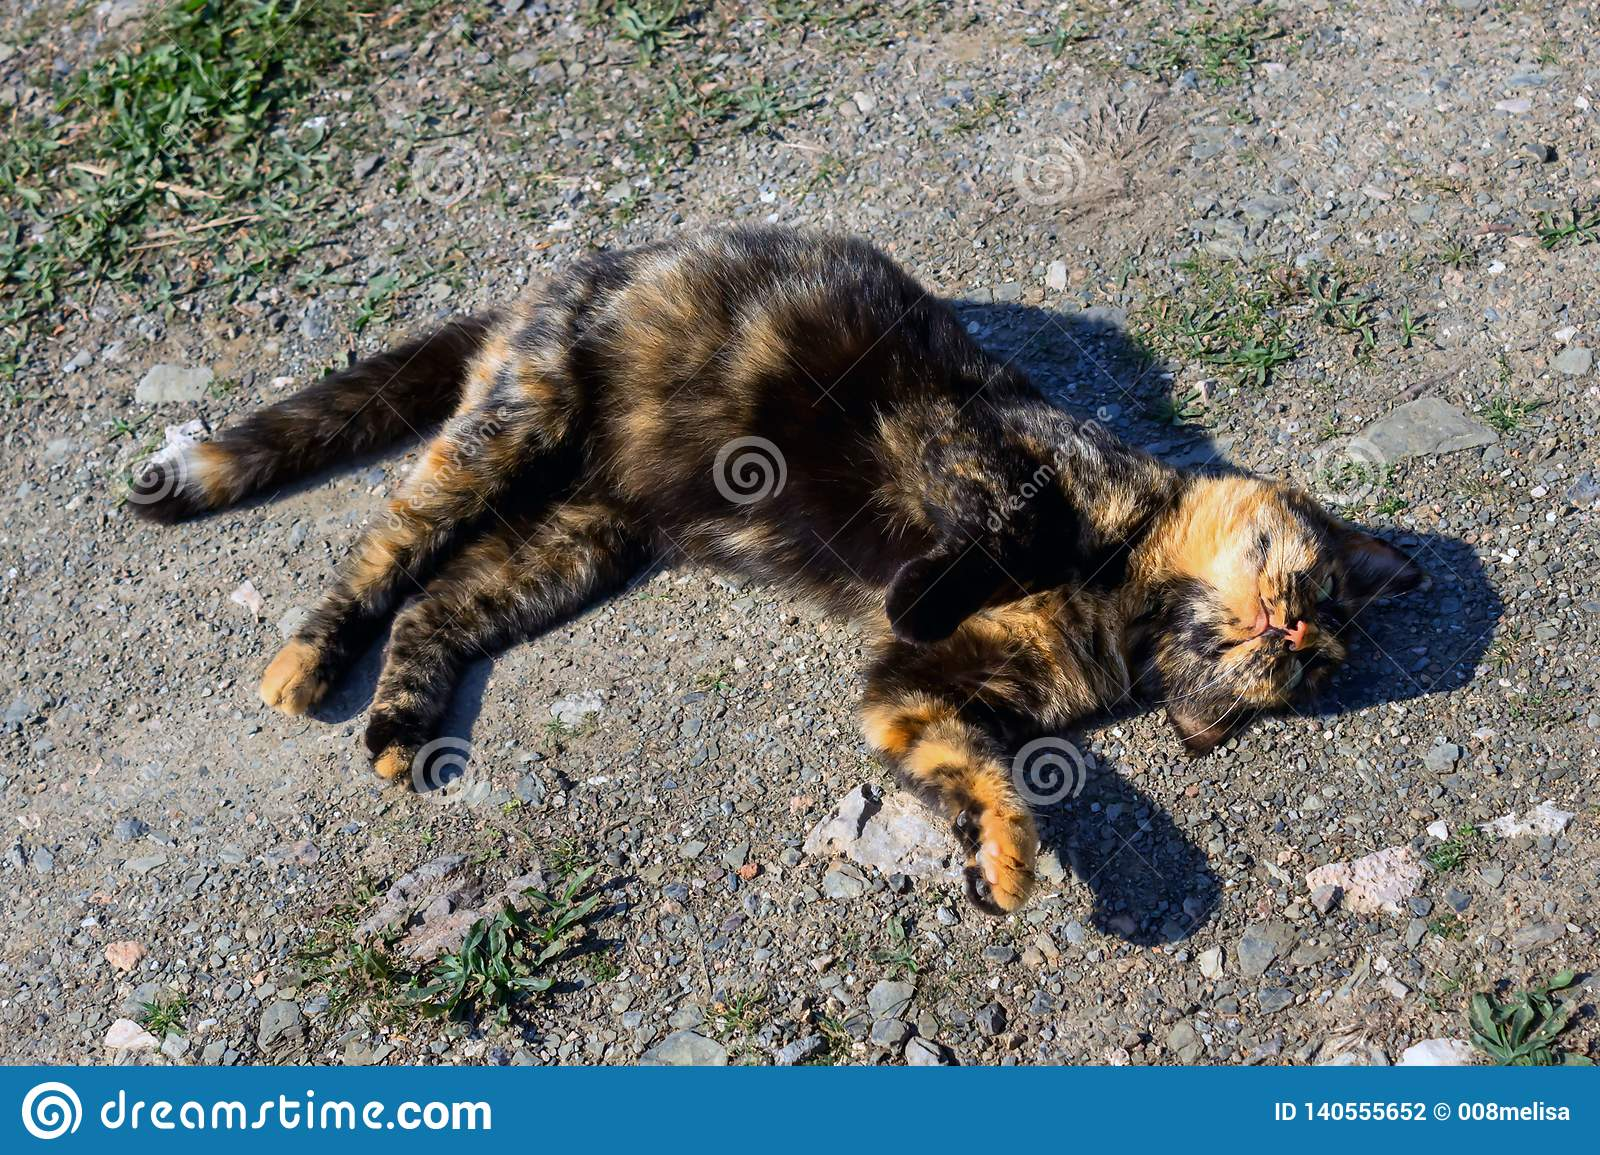 Beautiful tortoiseshell cat, pregnant, with a big belly, lying on the ground.